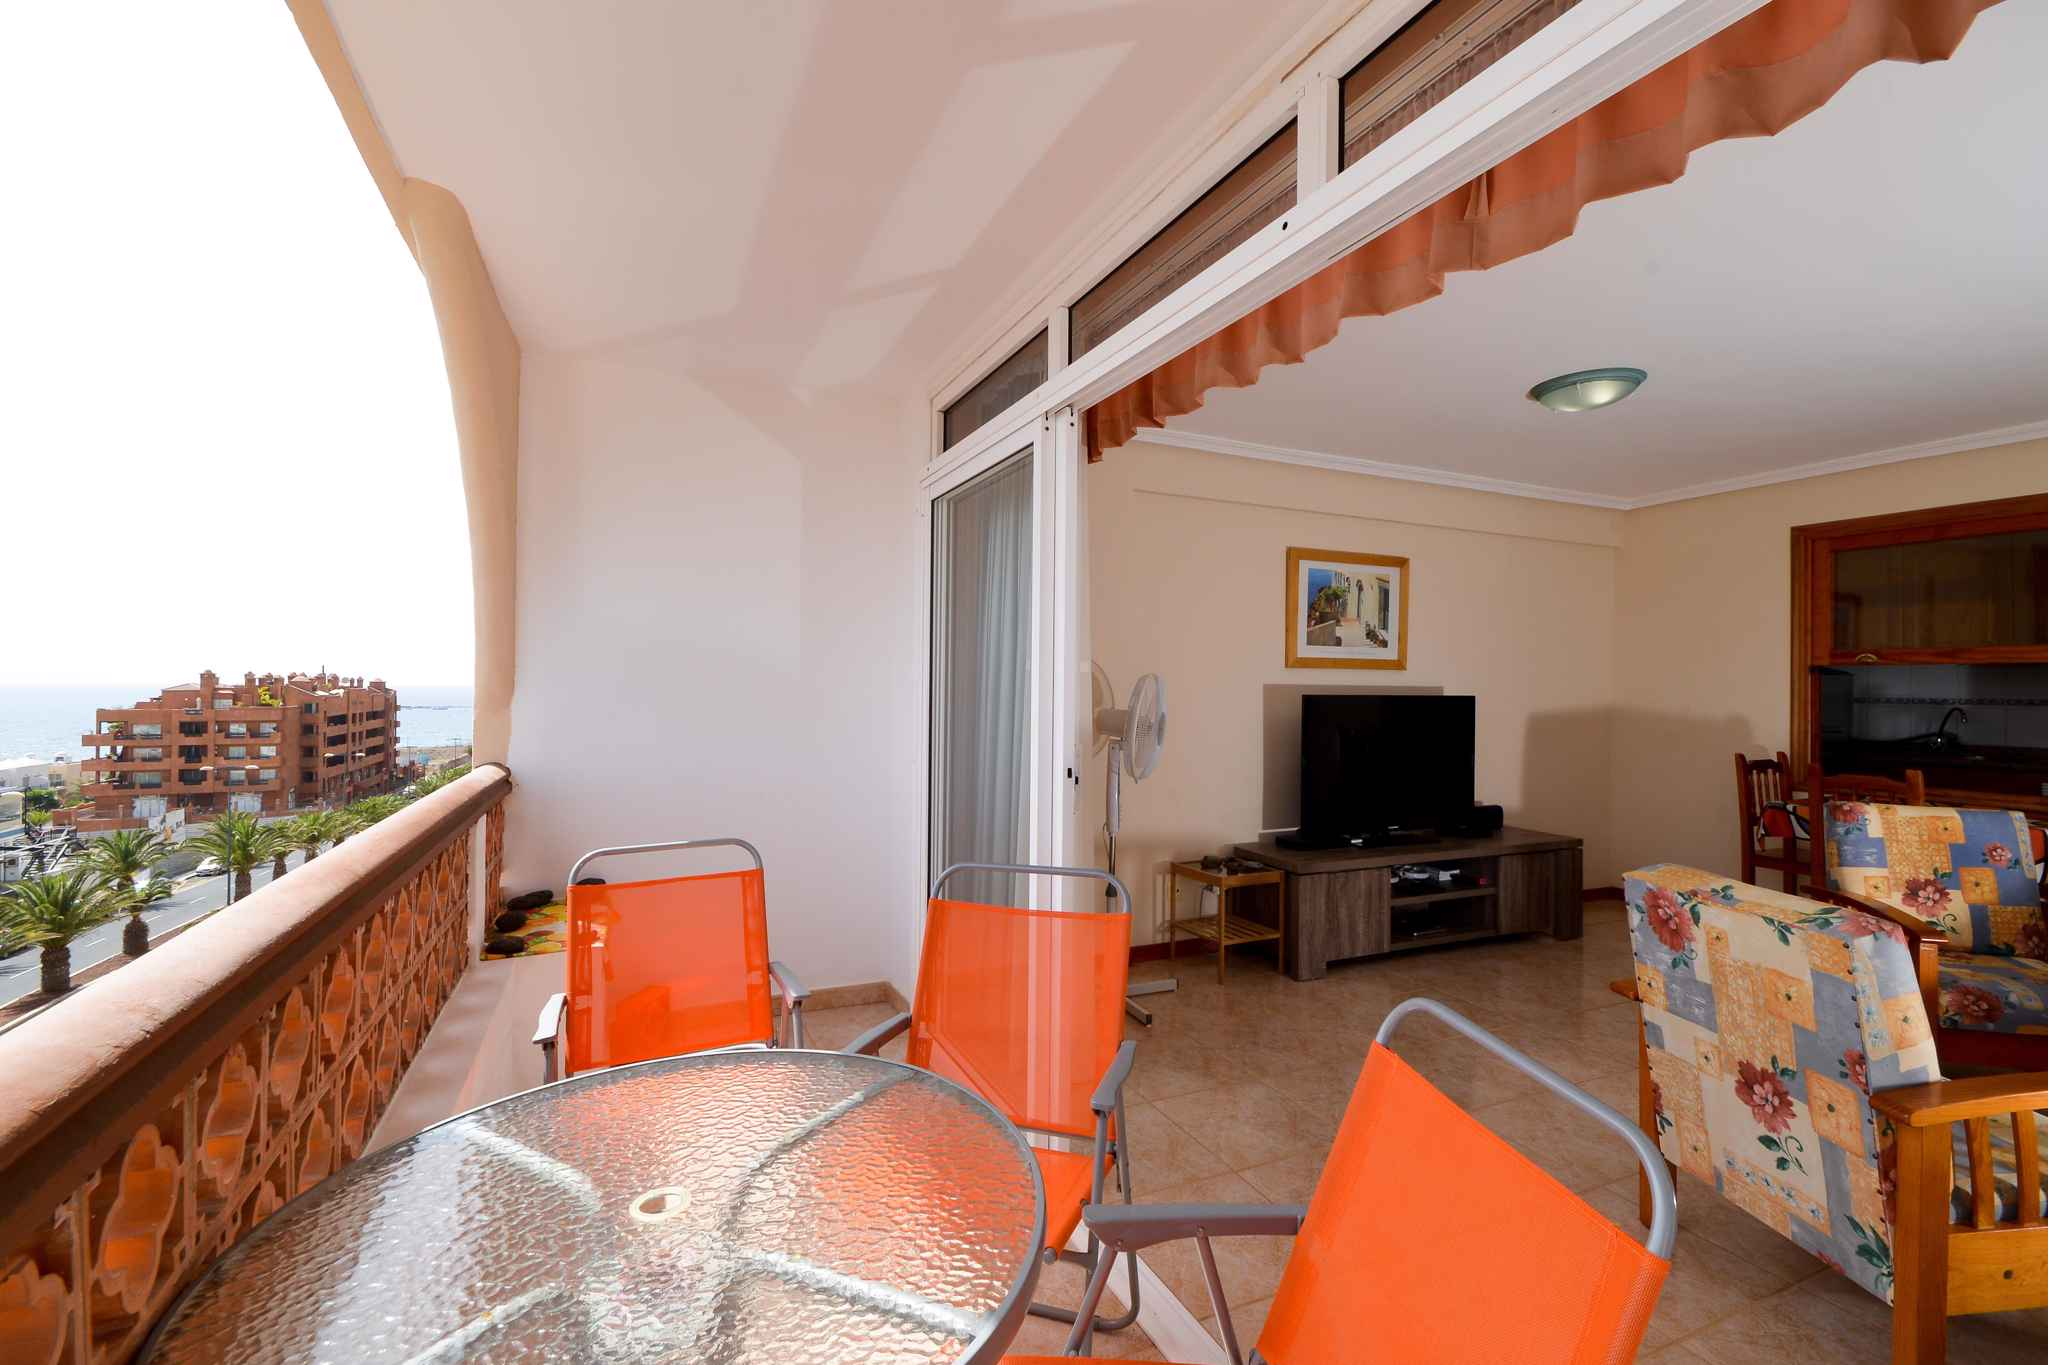 Holiday apartment mit Meerblick und Wifi in Strandnähe (1685535), Palm-Mar, Tenerife, Canary Islands, Spain, picture 7